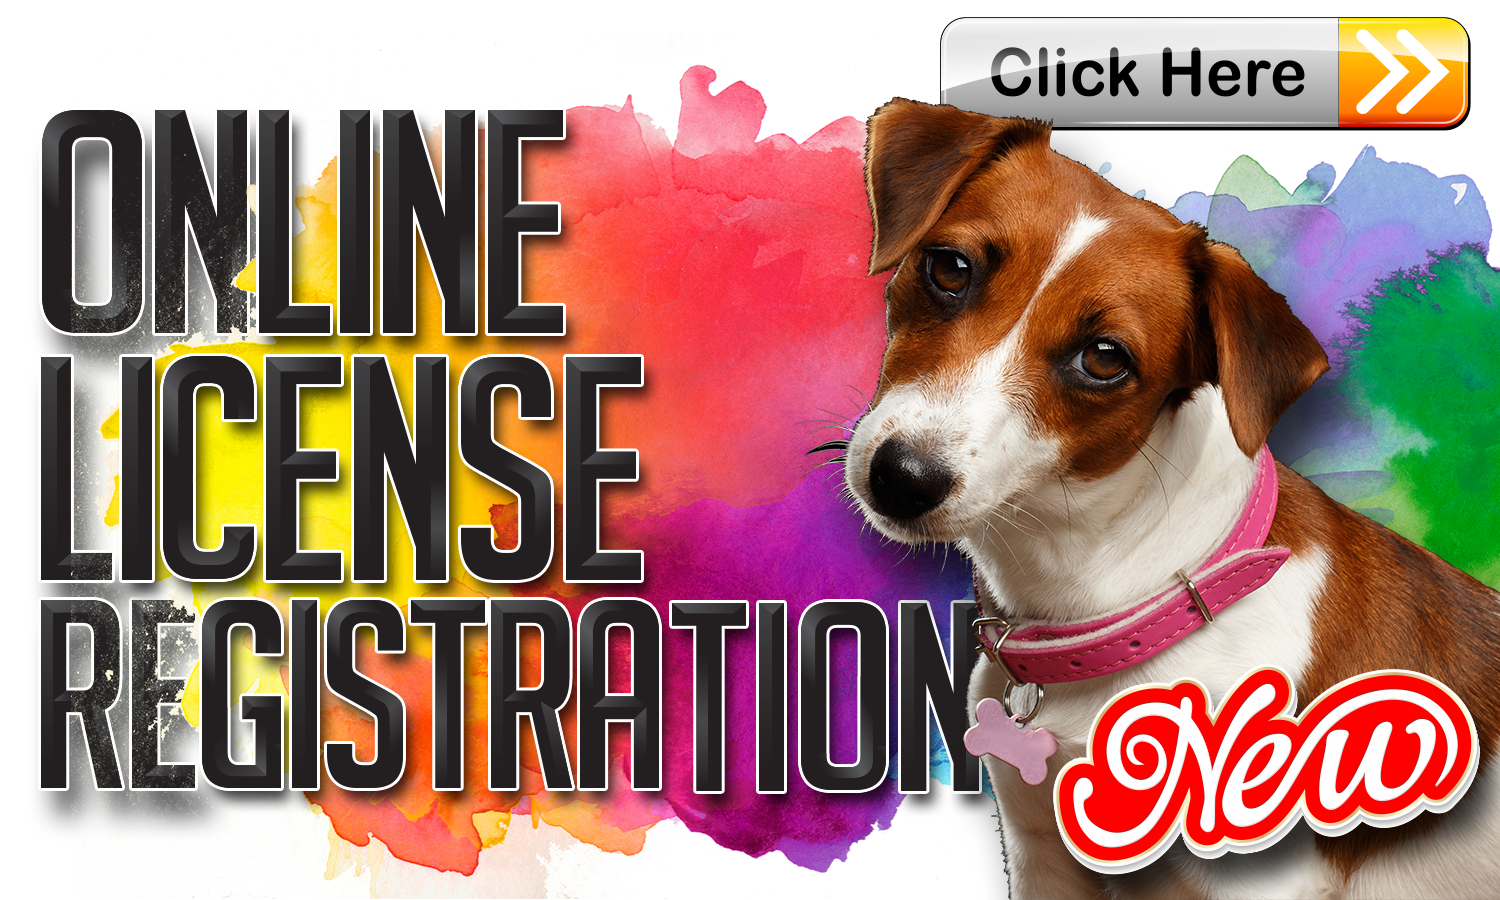 Animal-Control-Dog-License-Registration